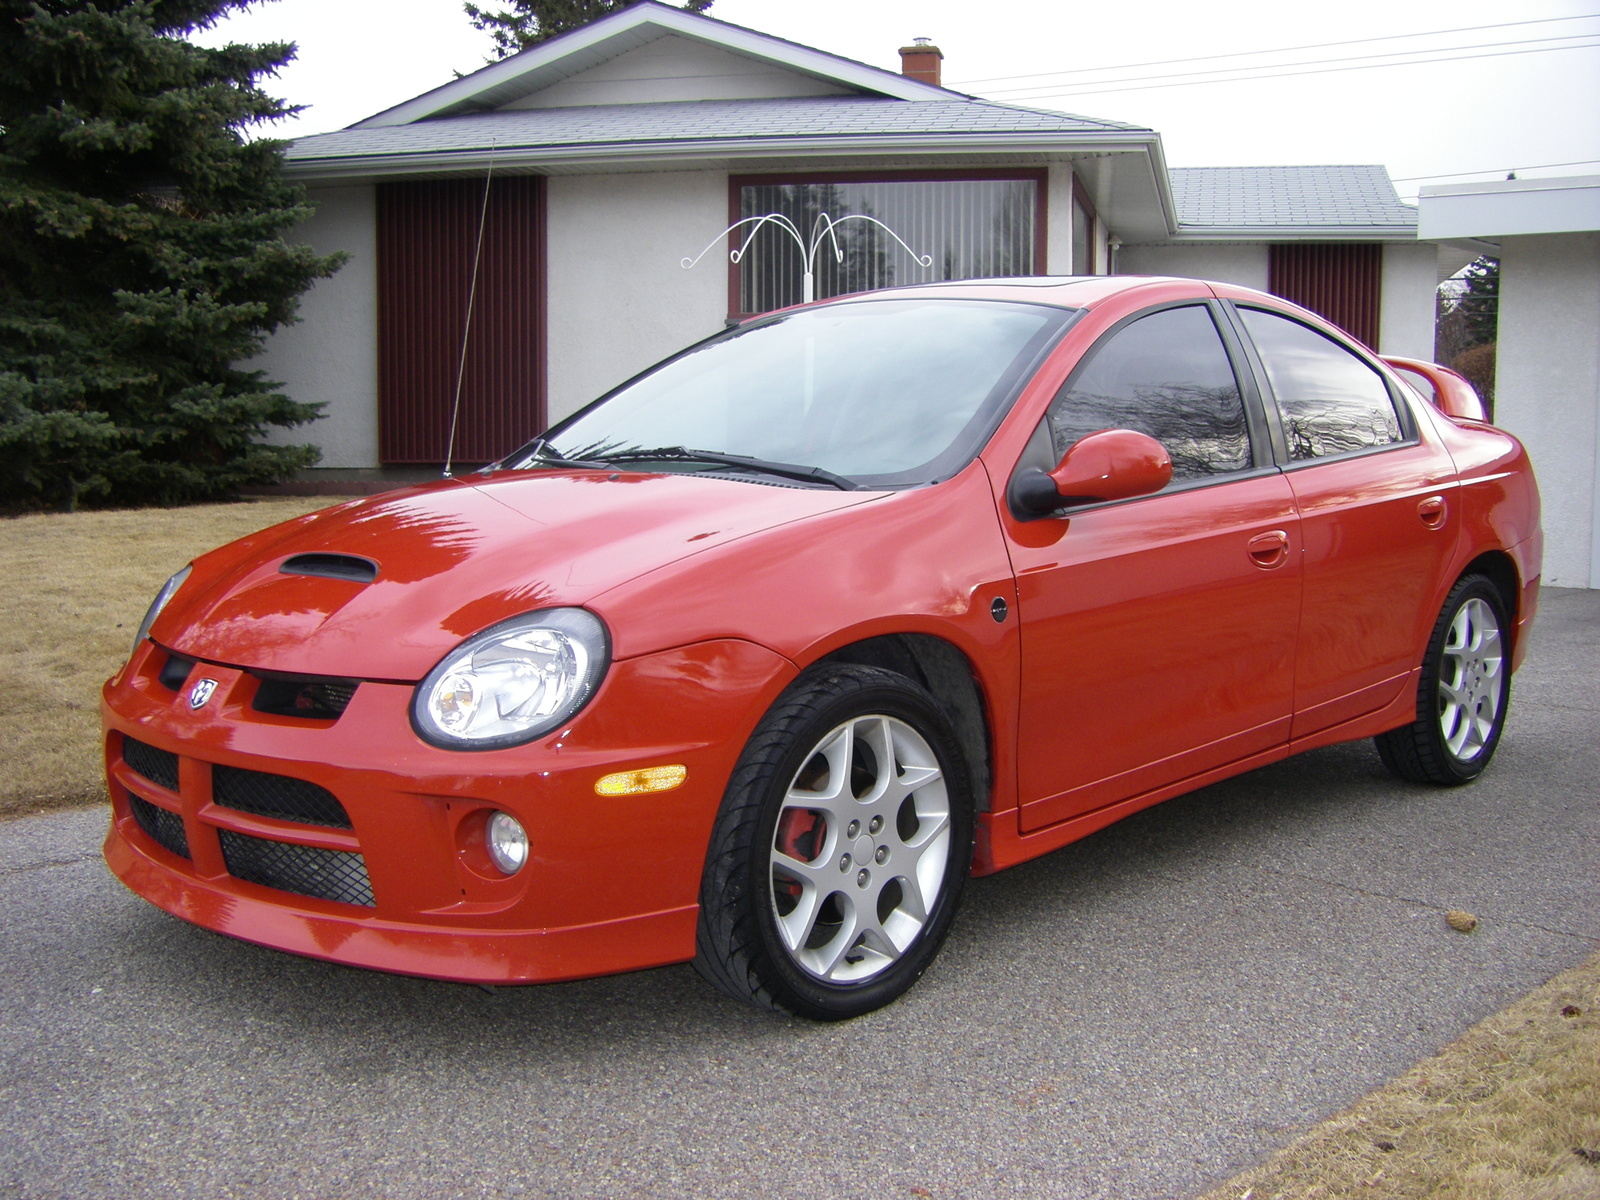 used dodge neon srt 4 for sale cargurus autos post. Black Bedroom Furniture Sets. Home Design Ideas